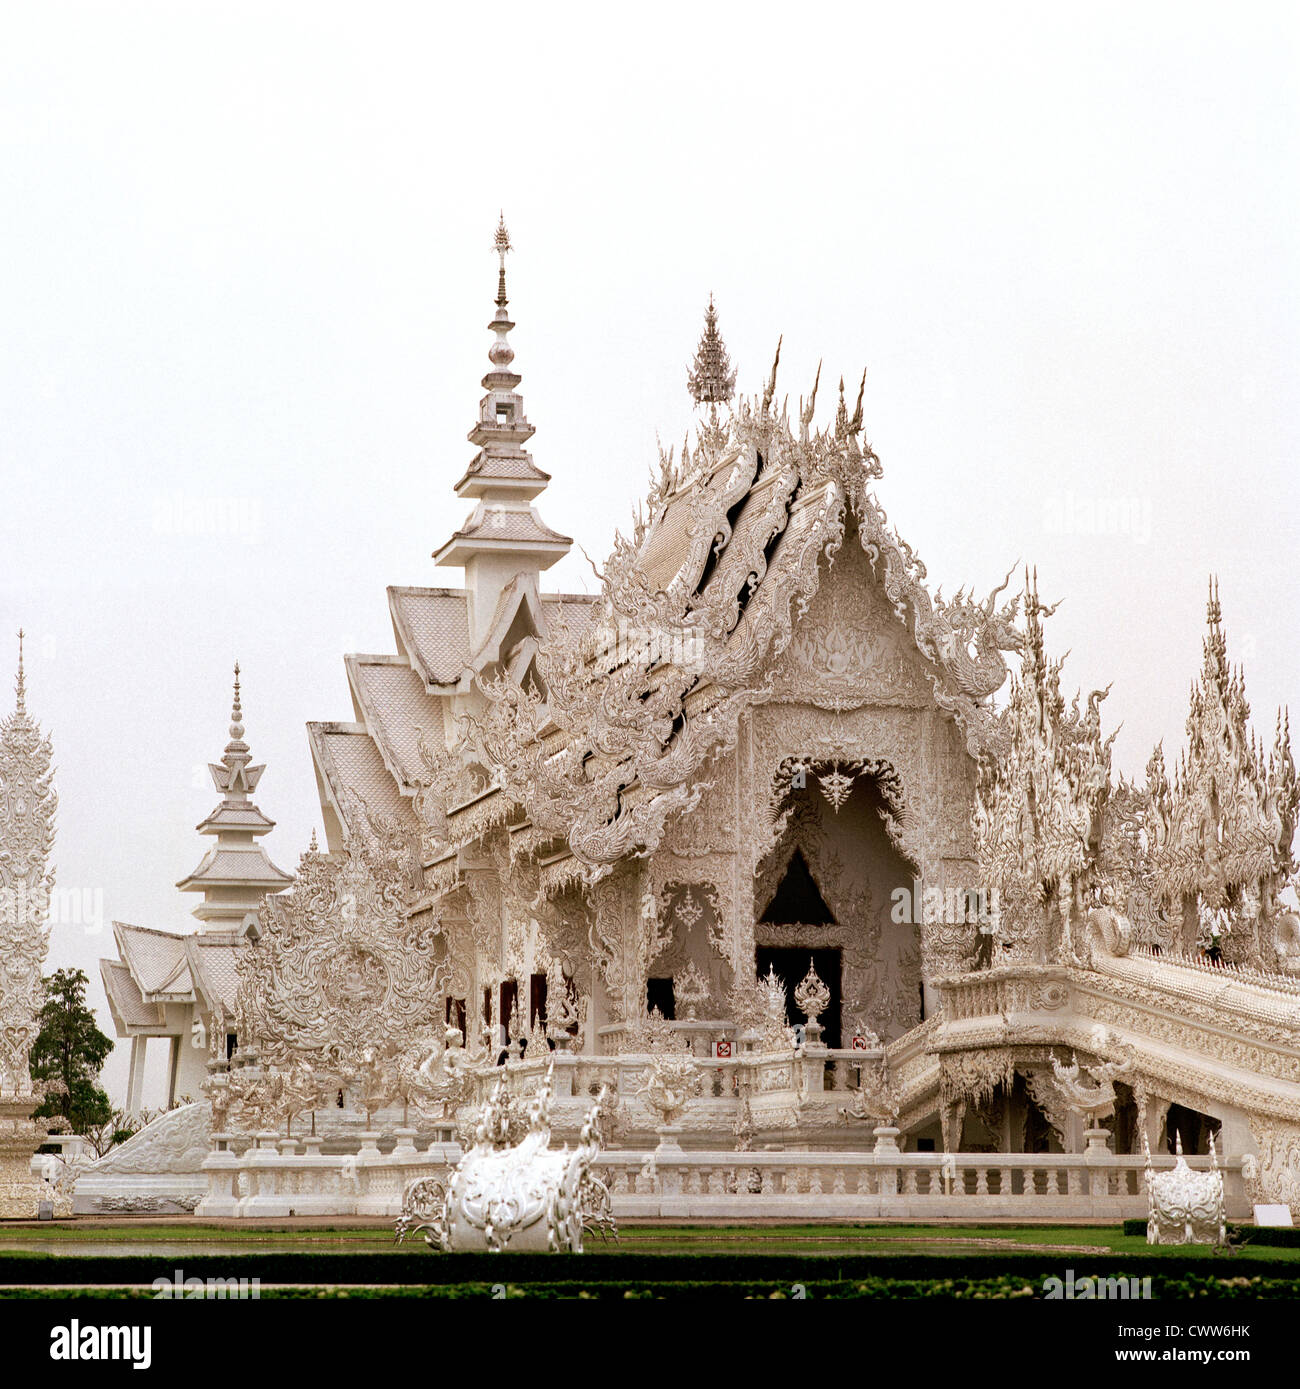 Wat Rong Khun White Temple Chiang Rai in Thailand in Southeast Asia Far East. Travel Religion Architecture Building Stock Photo